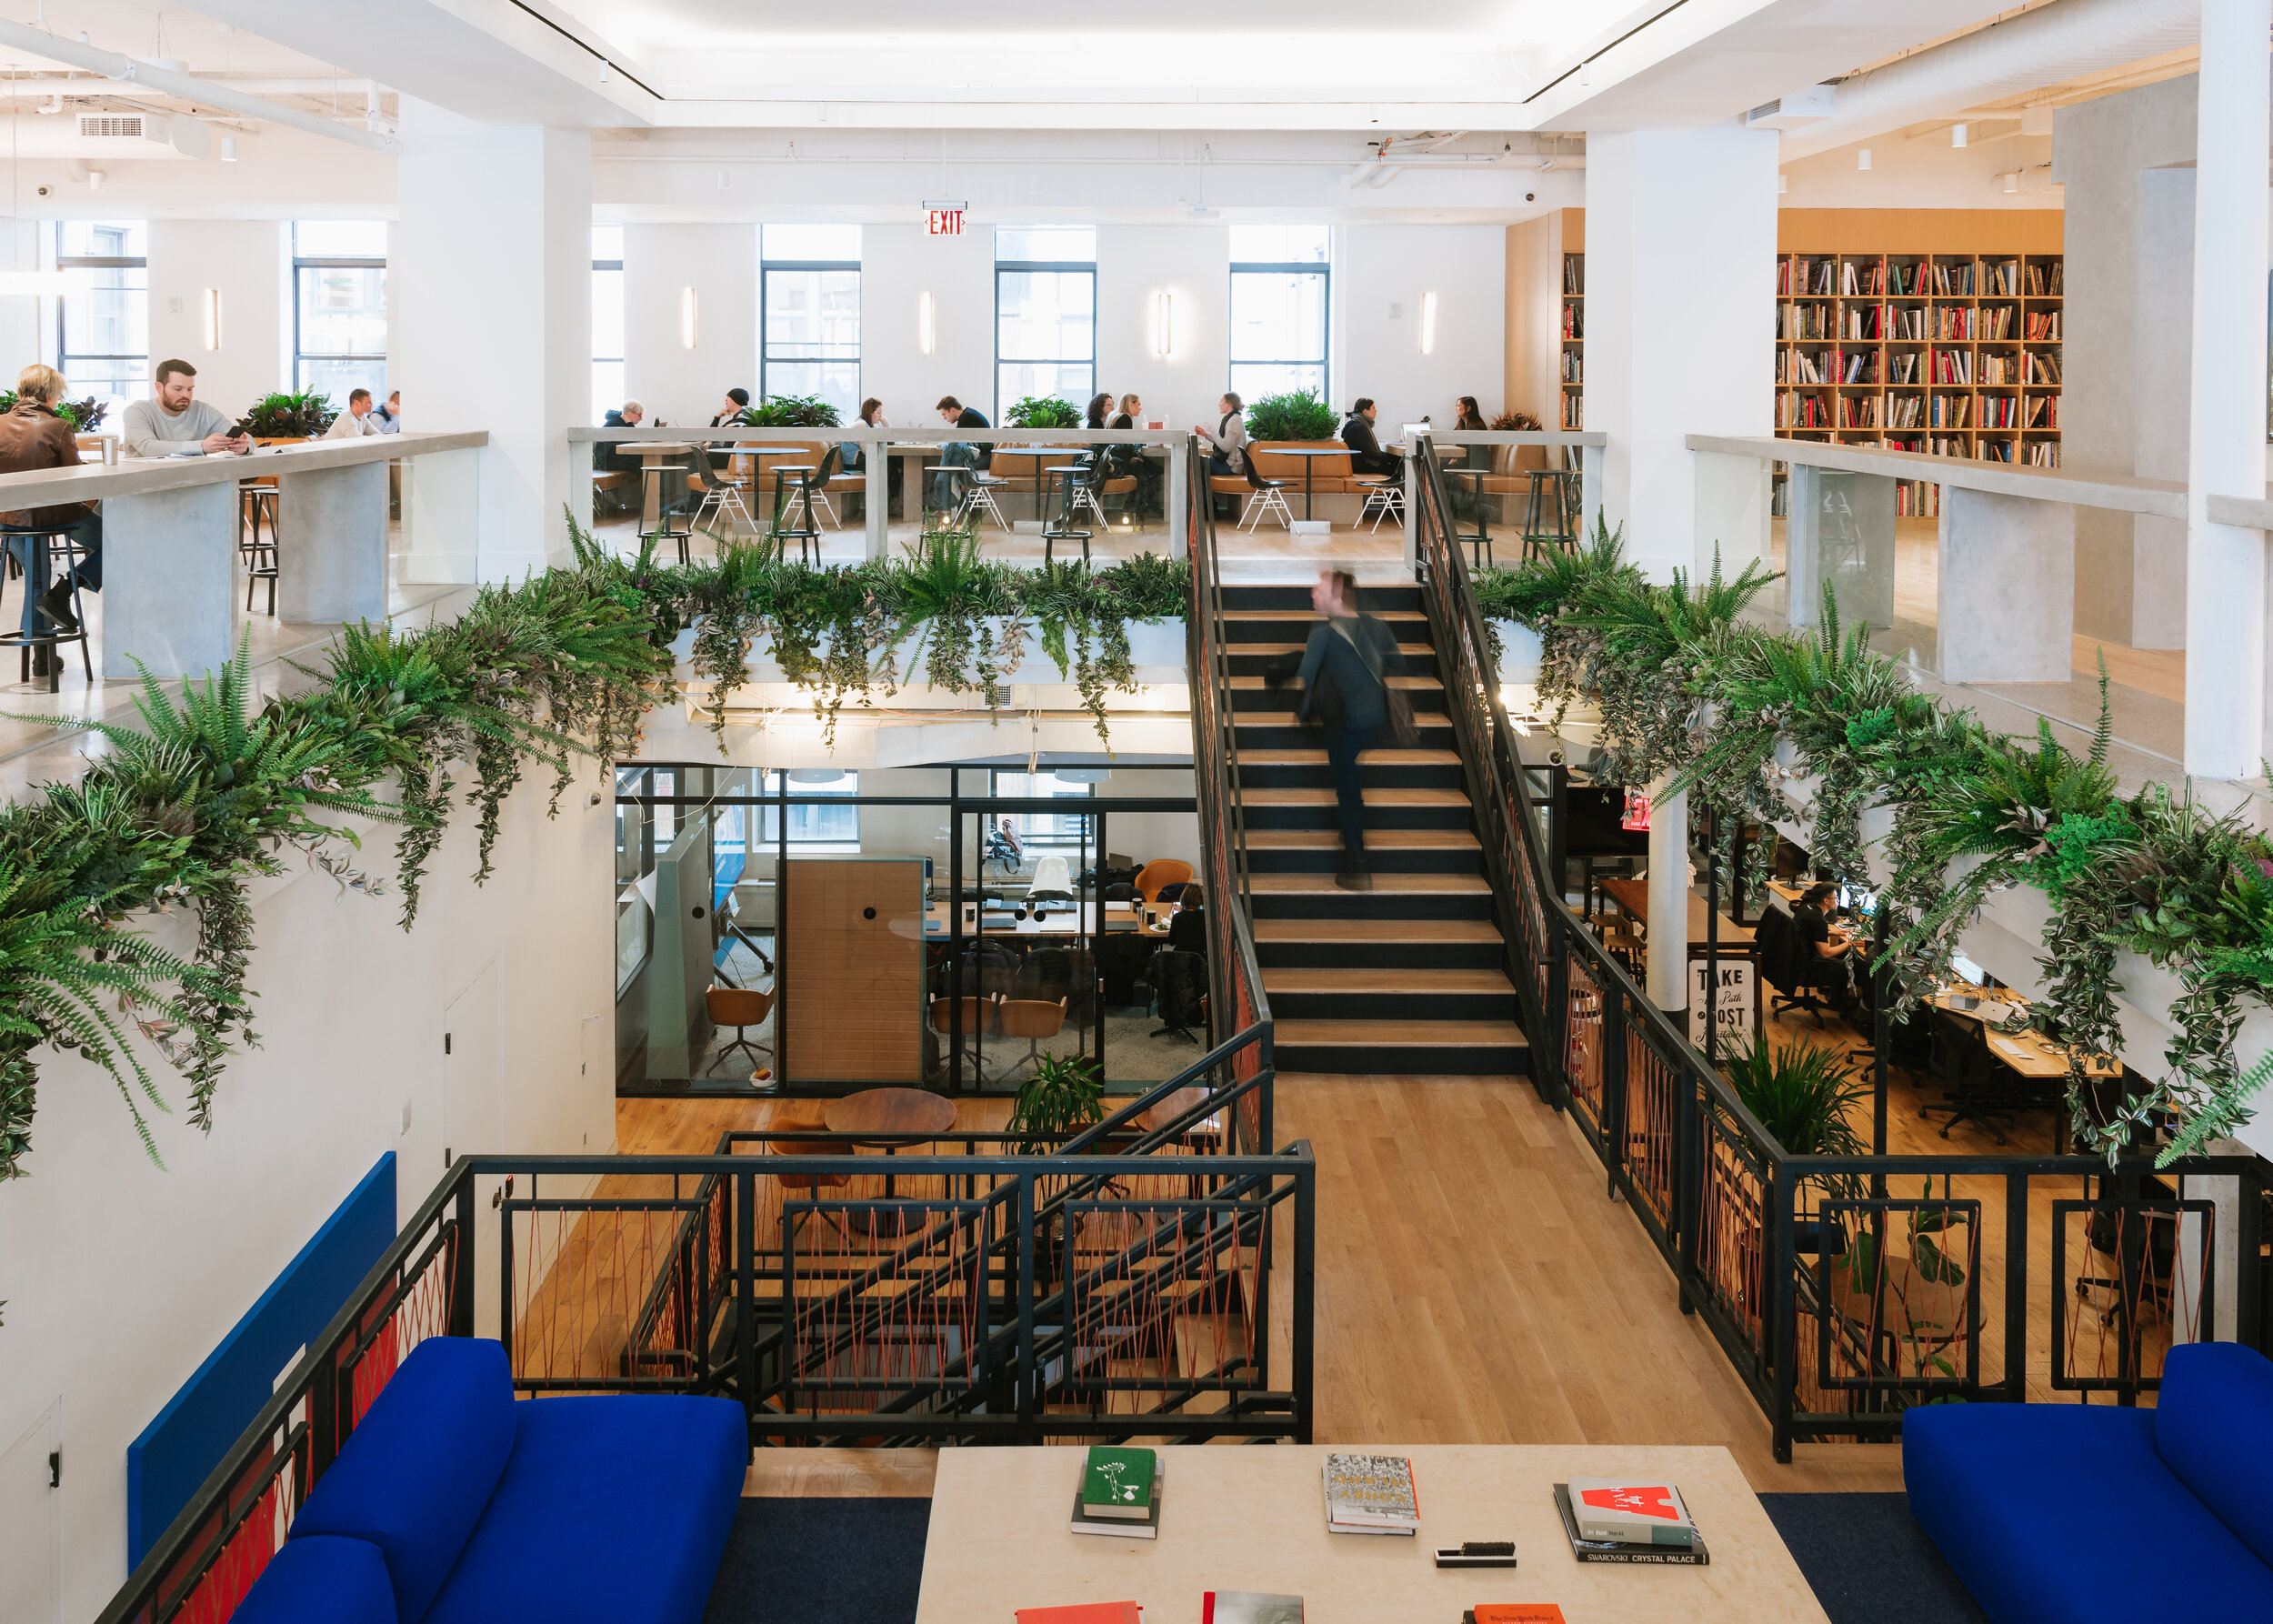 New York-based WeWork says it has a business model to withstand a recession. (WeWork)